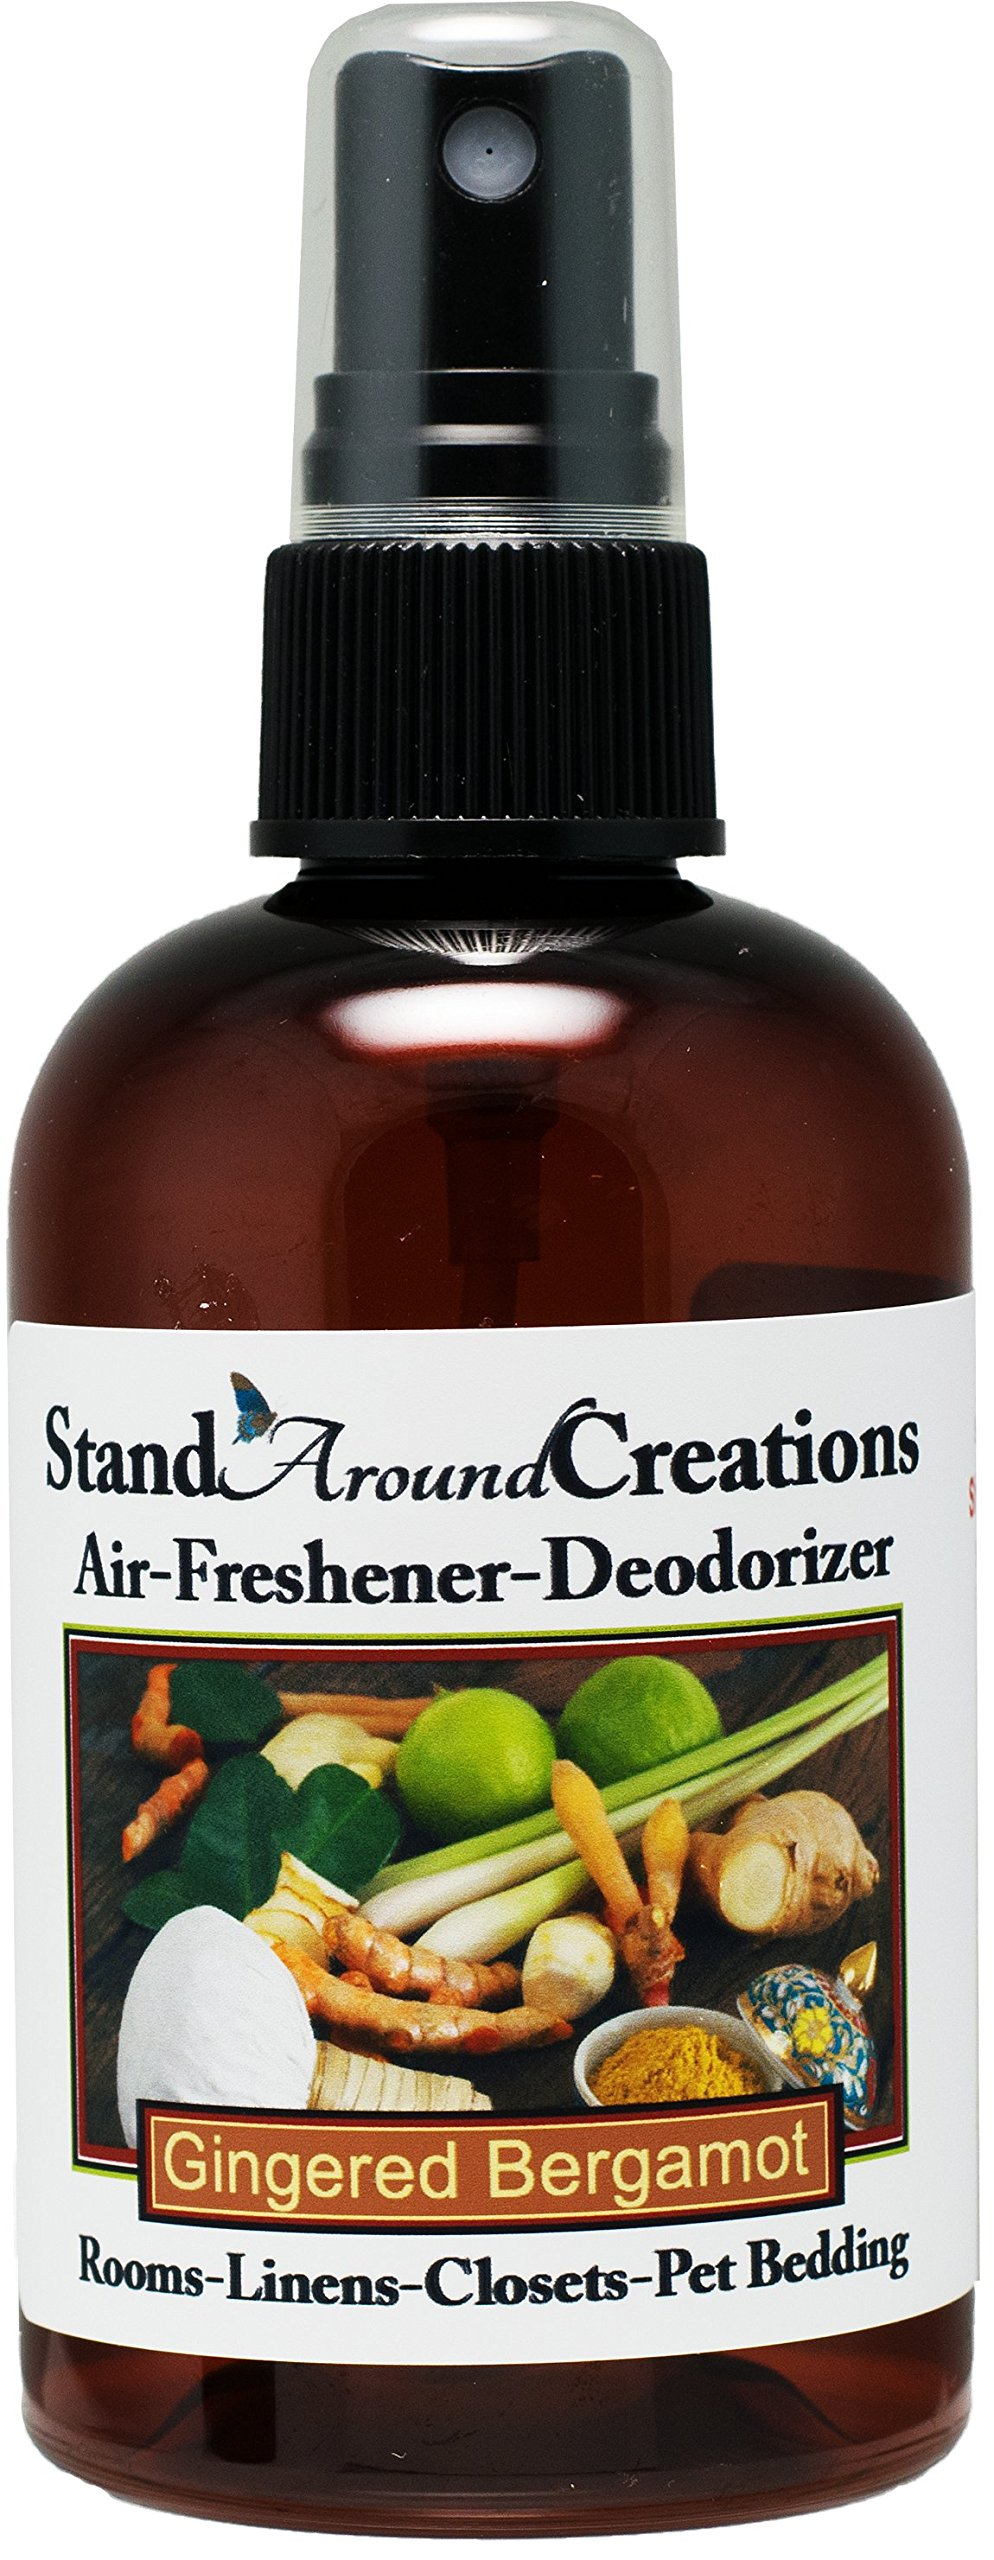 Concentrated Spray For Room / Linen / Room Deodorizer / Air Freshener - 4 fl oz - Scent - Gingered Bergamot: A tantalizing fragrance that blends the fresh citrus bergamot with exotic spices such as ginger, sandalwood, patchouli, & basil.